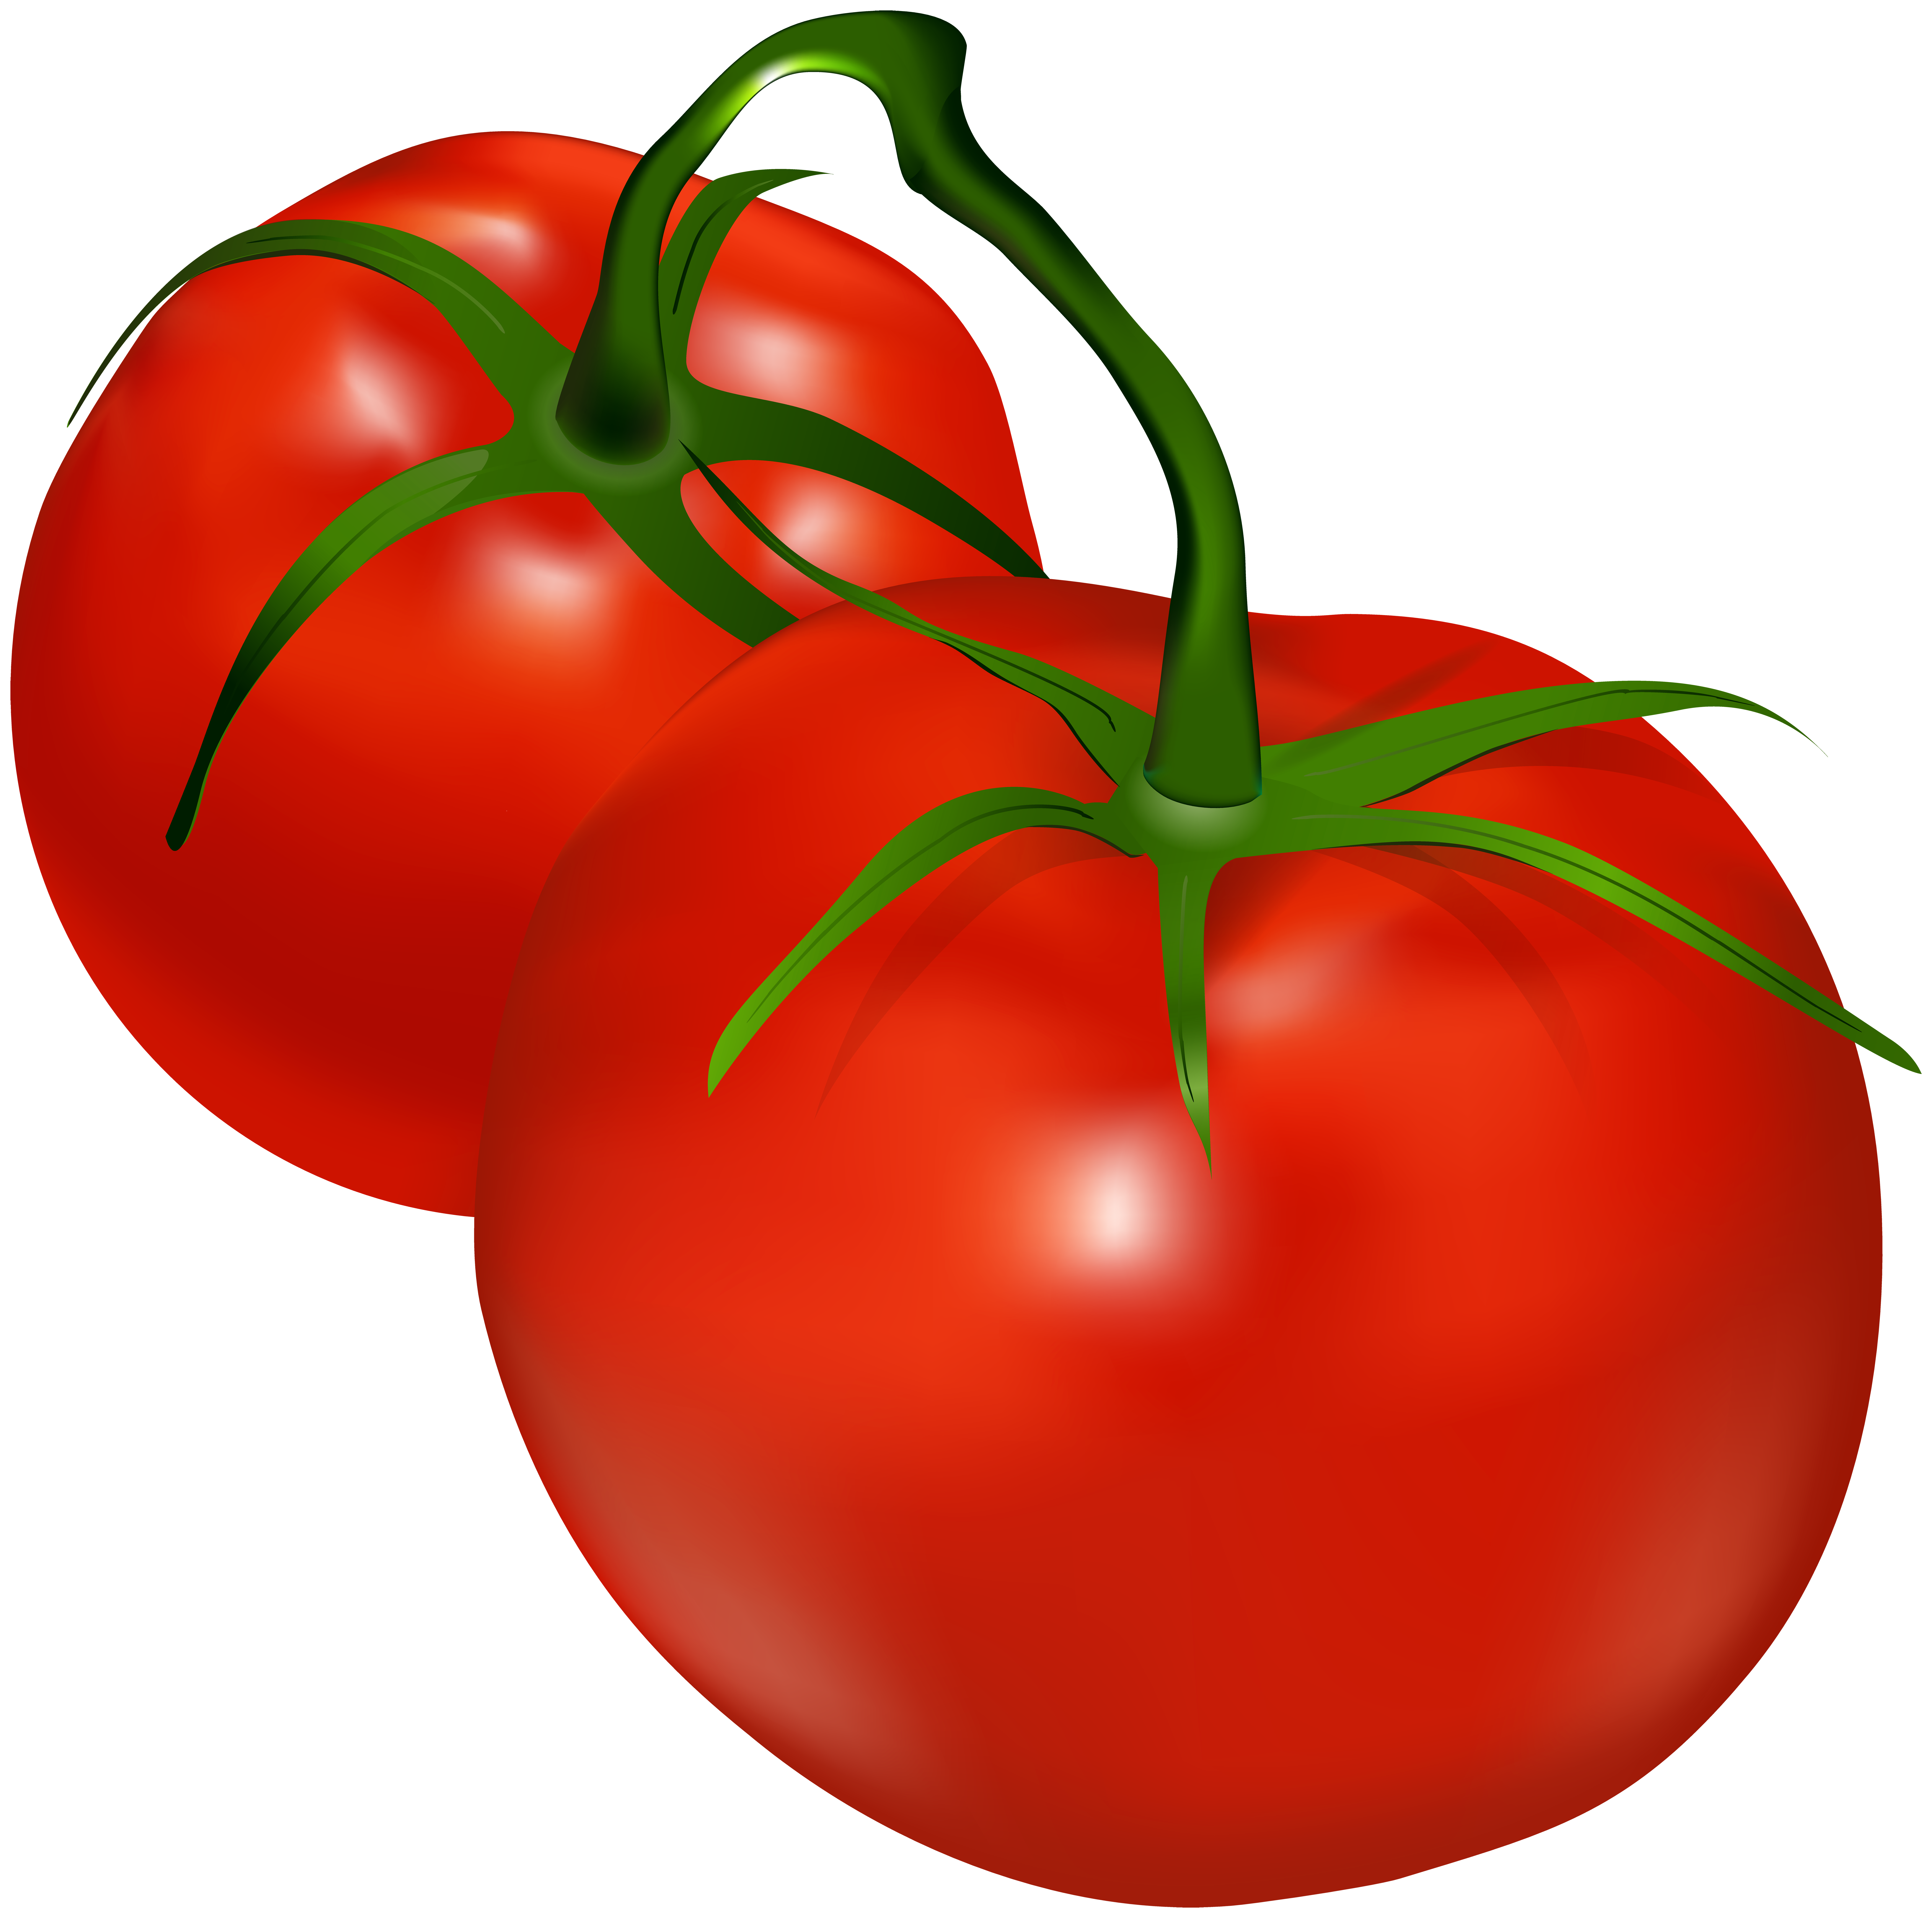 Outline clipart tomato. Tomatoes transparent png clip